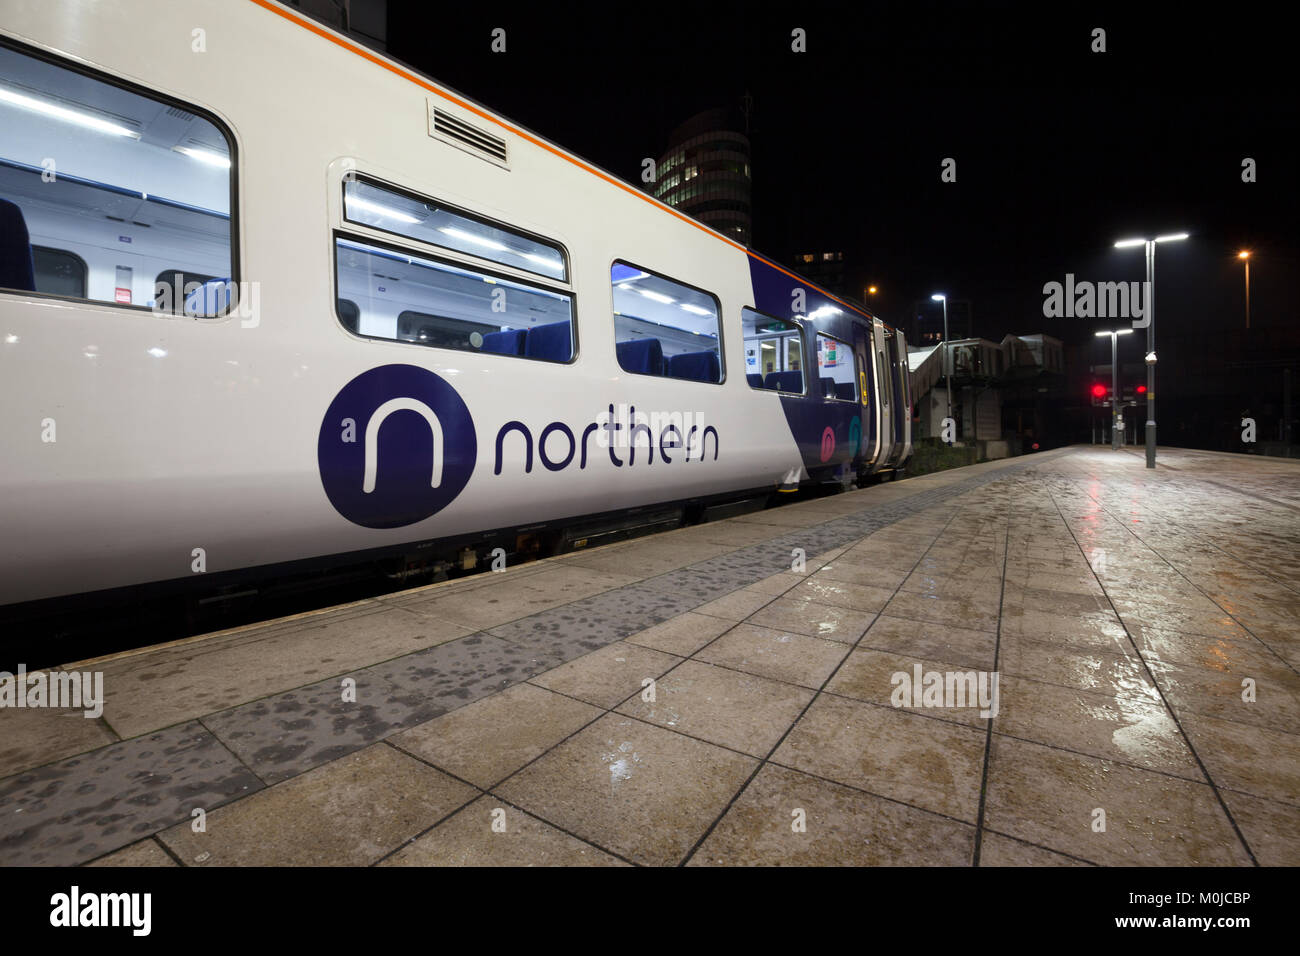 Arriva Northern Rail logo on a class 158 express sprinter train at  Manchester Victoria  station - Stock Image